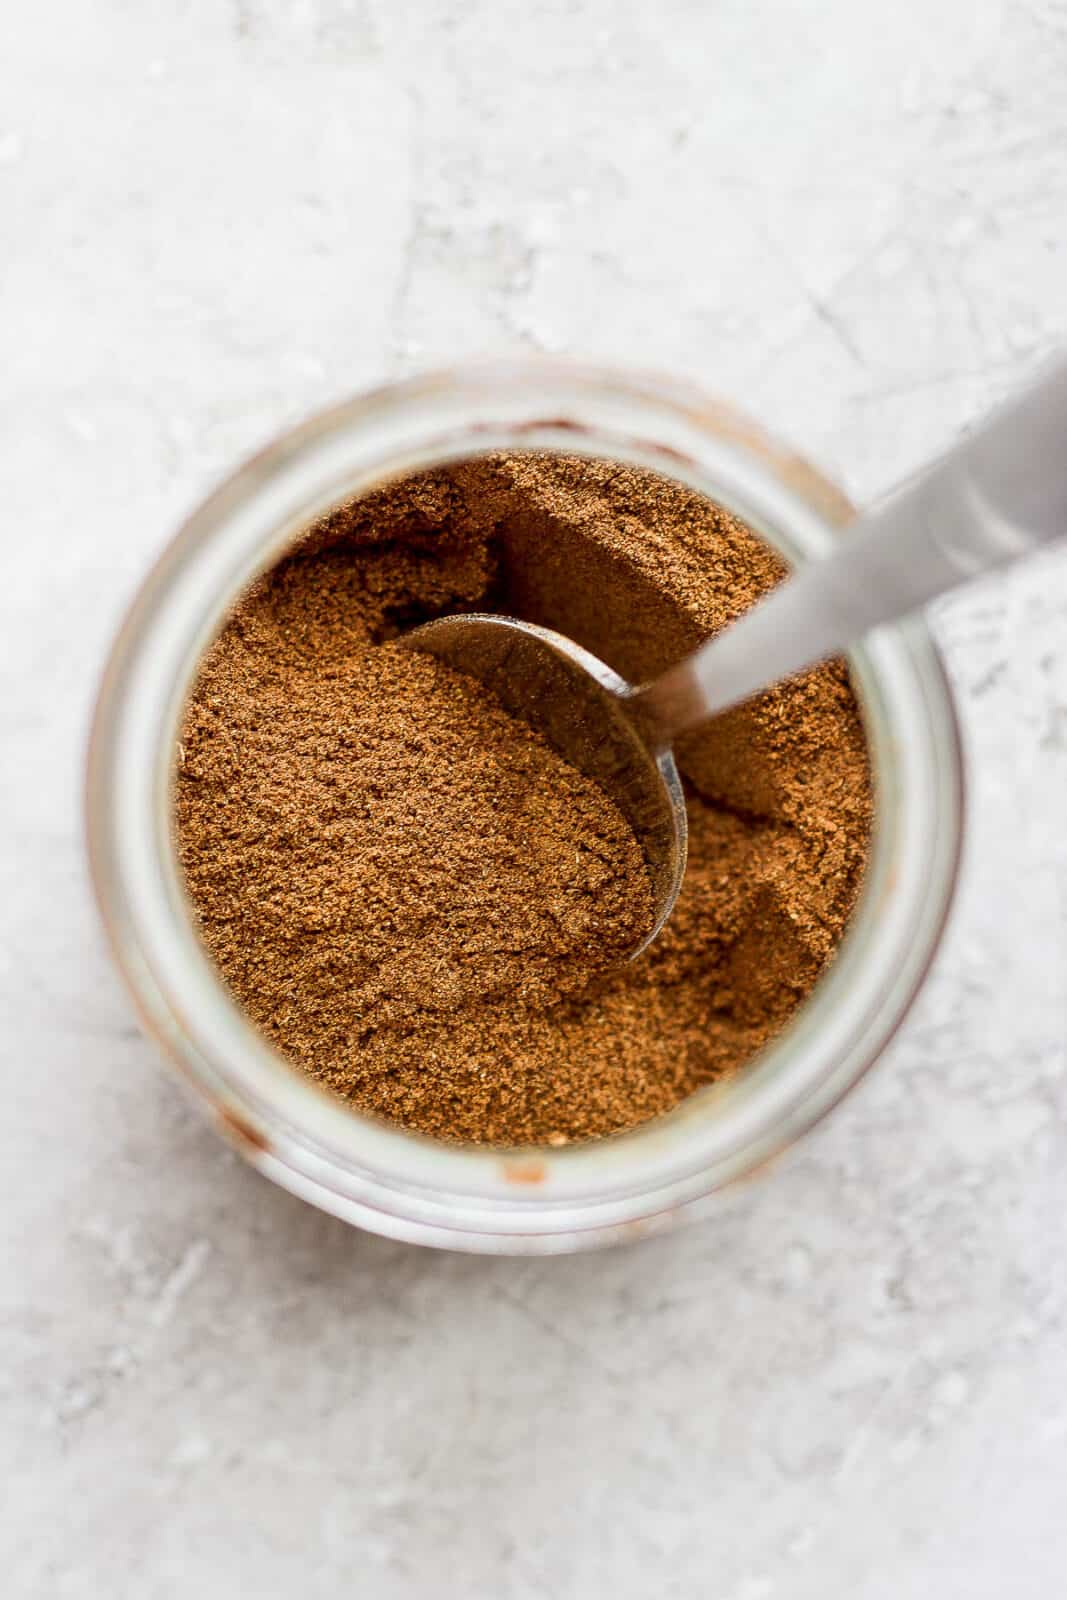 Pumpkin spice ingredients mixed together in a jar with a spoon.